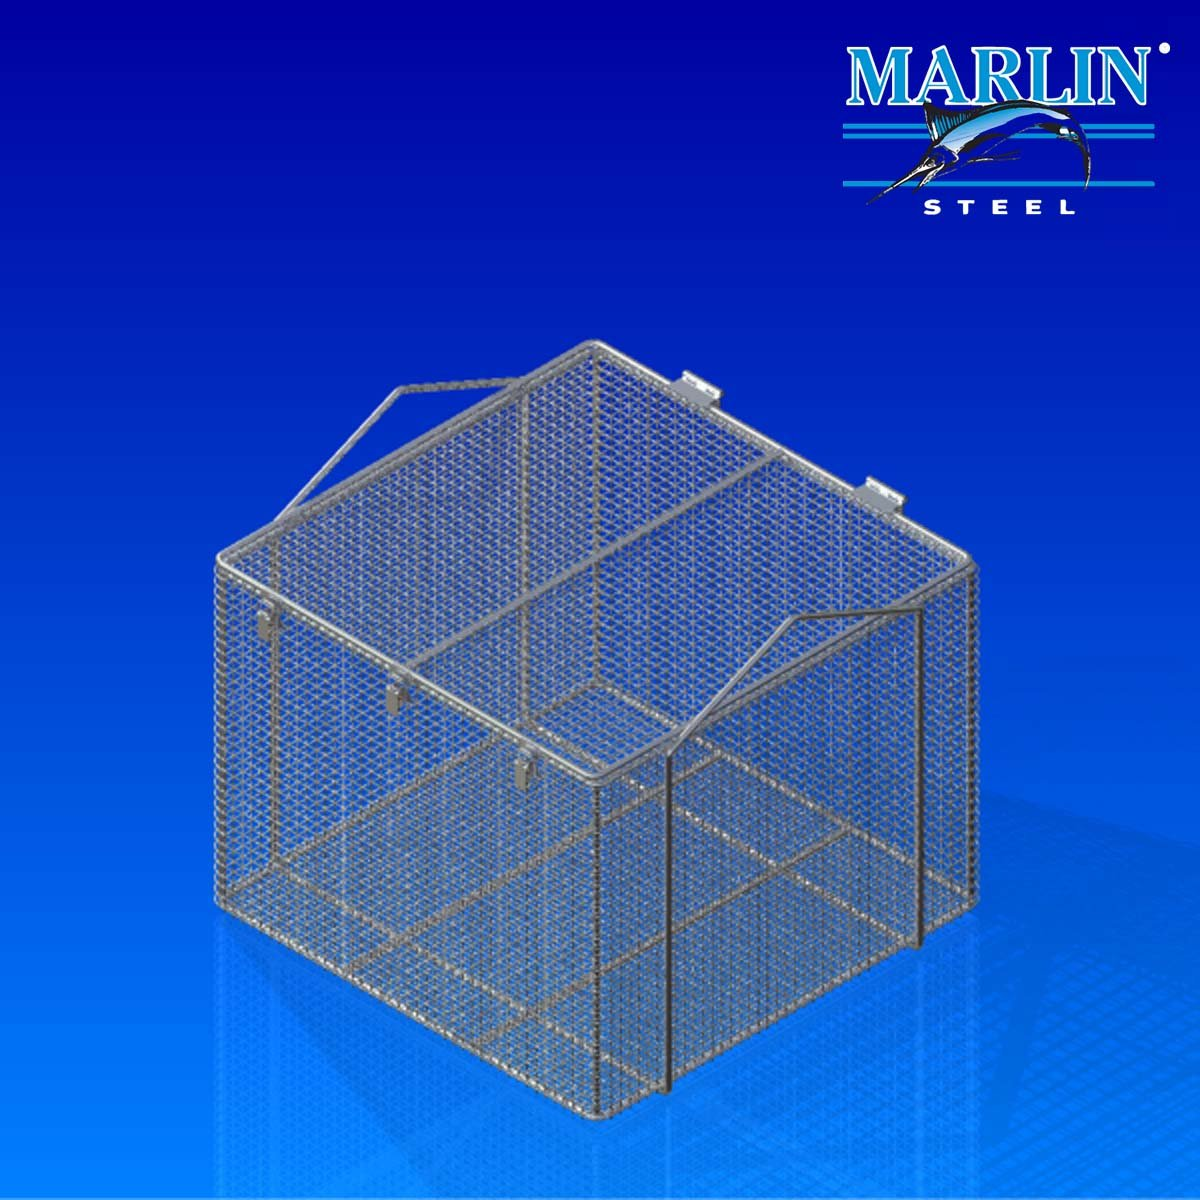 Marlin Steel Basket with Handles 920001